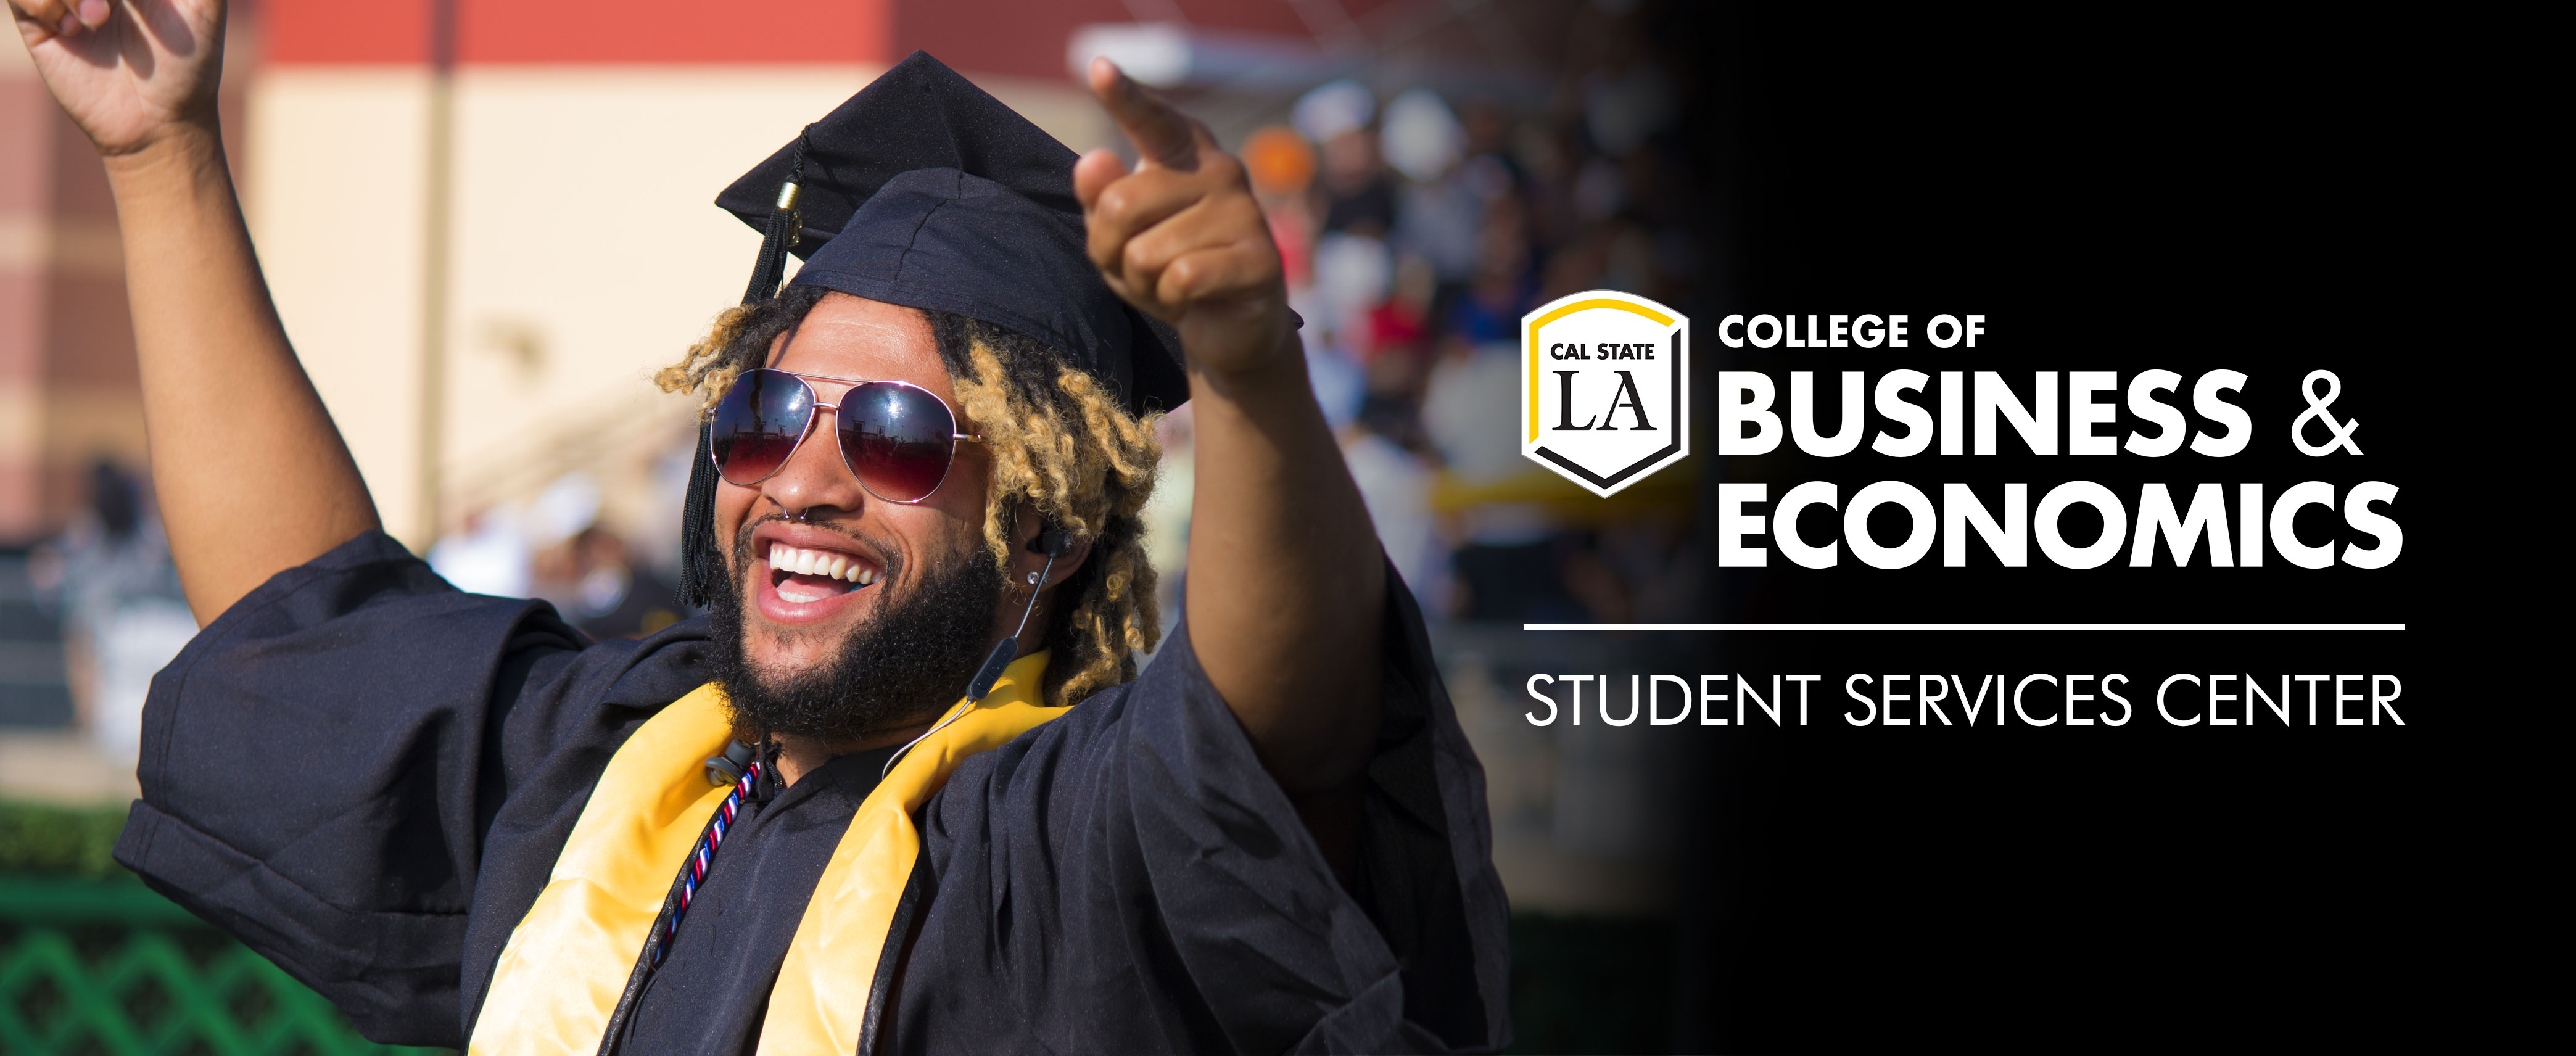 Cal State LA College of Business & Economics | Student Services Center